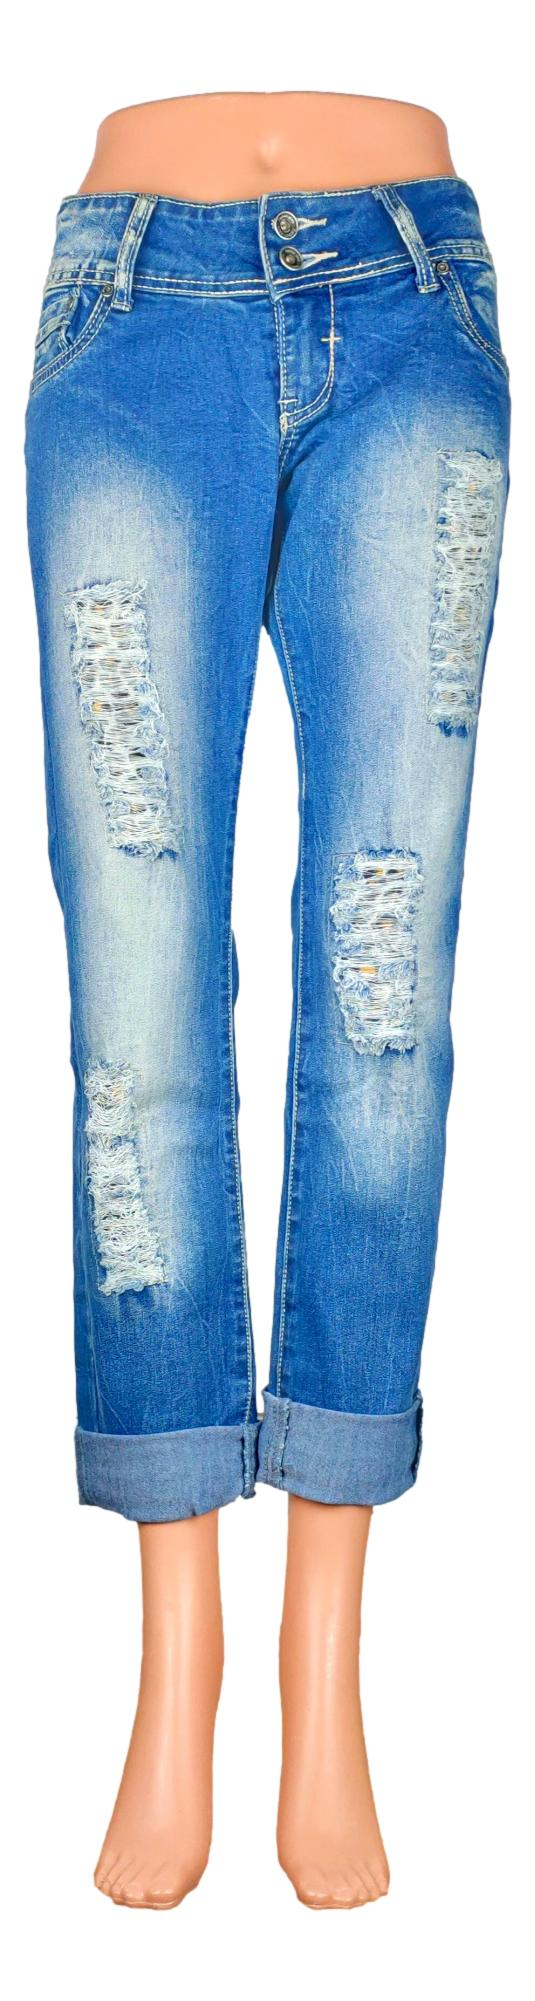 Jean Hot Bottom - Taille 42